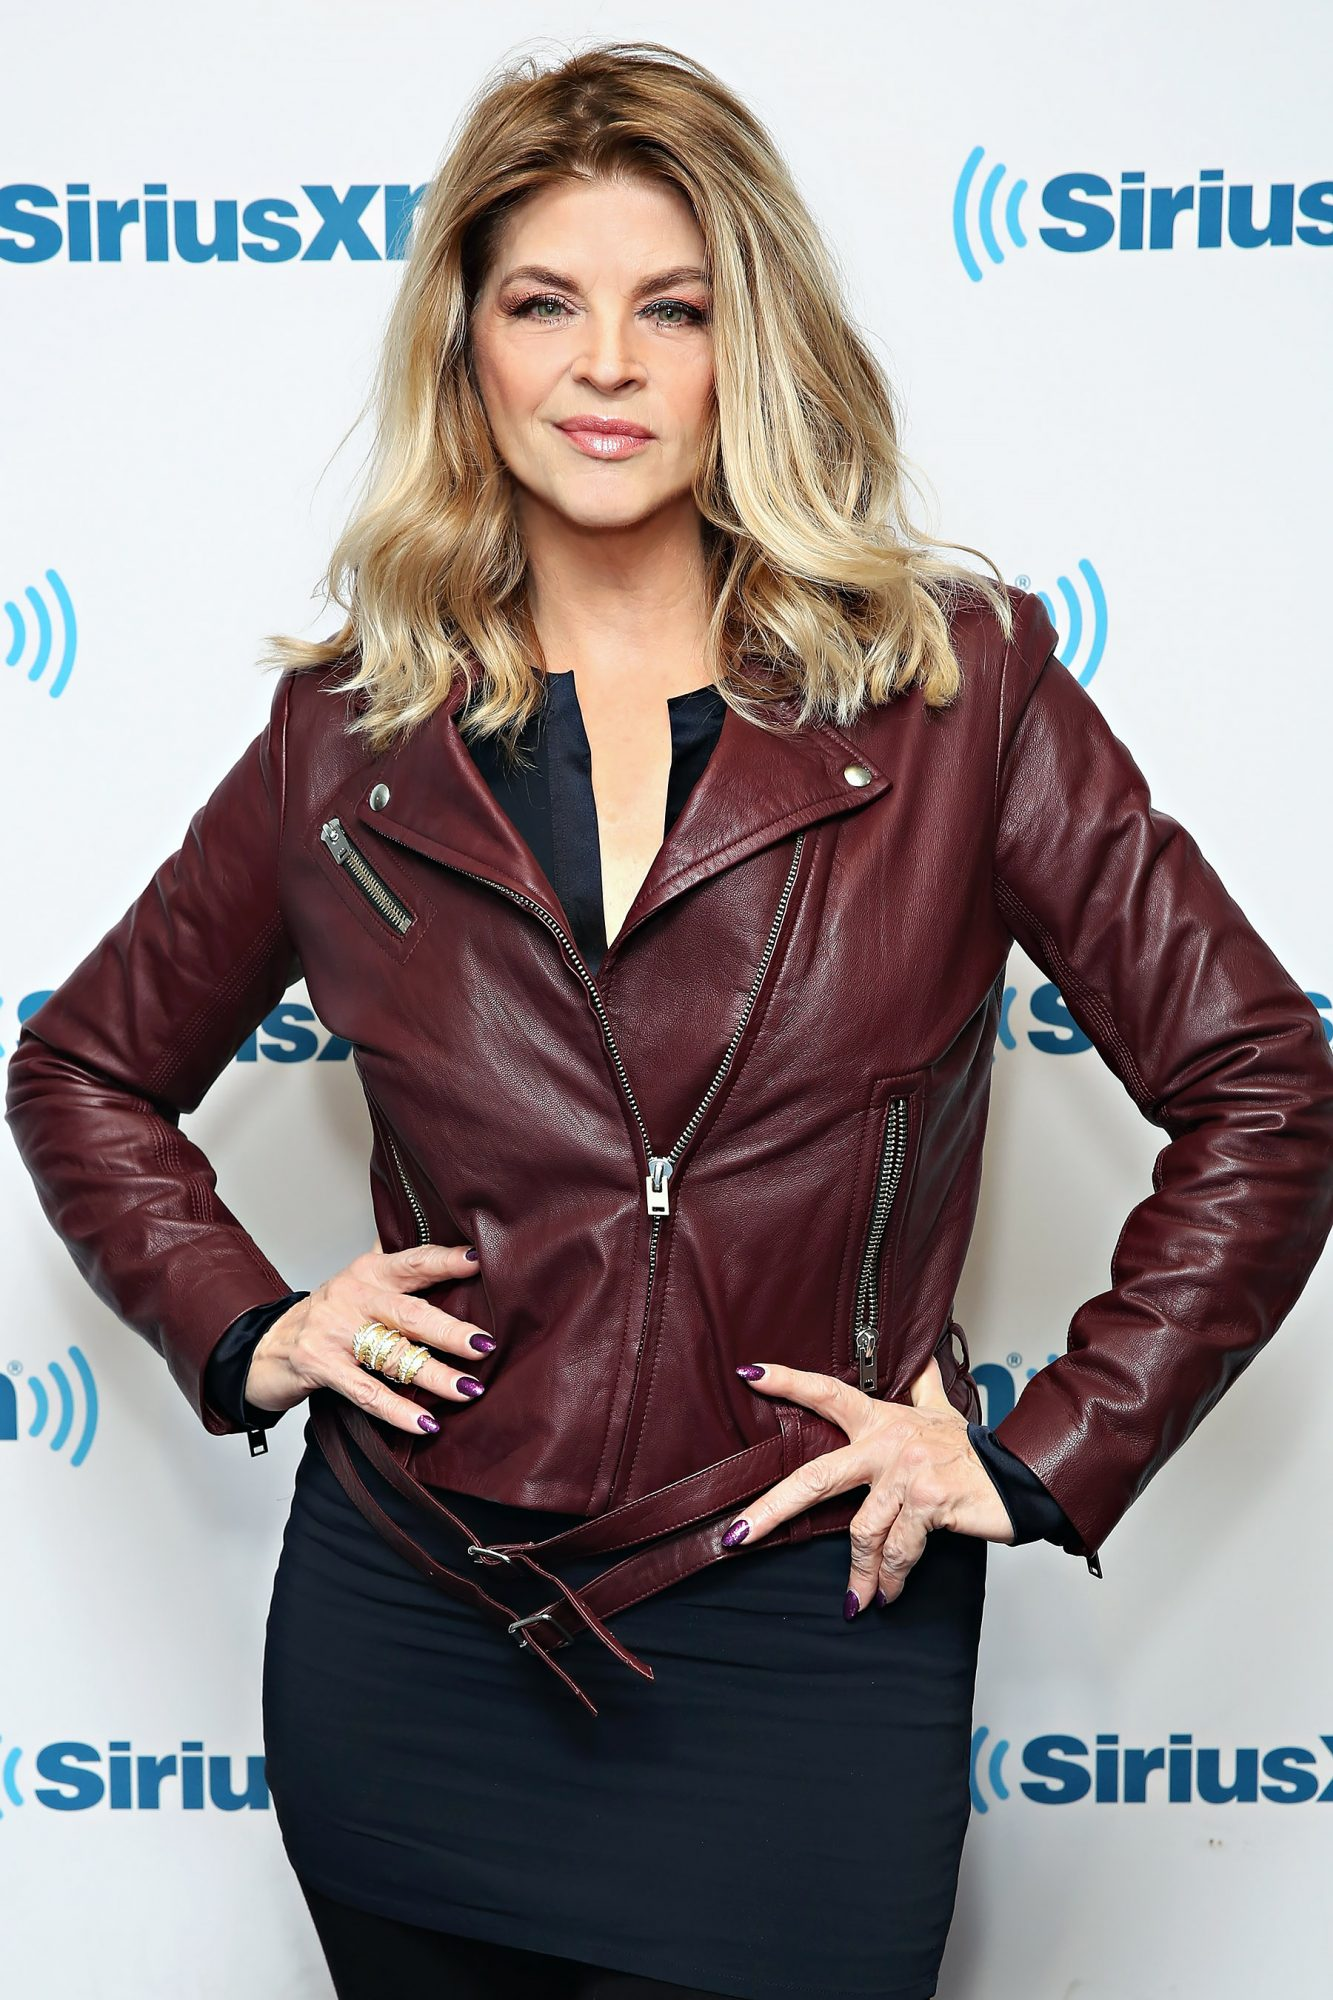 Celebrities Visit SiriusXM Studios - January 6, 2016